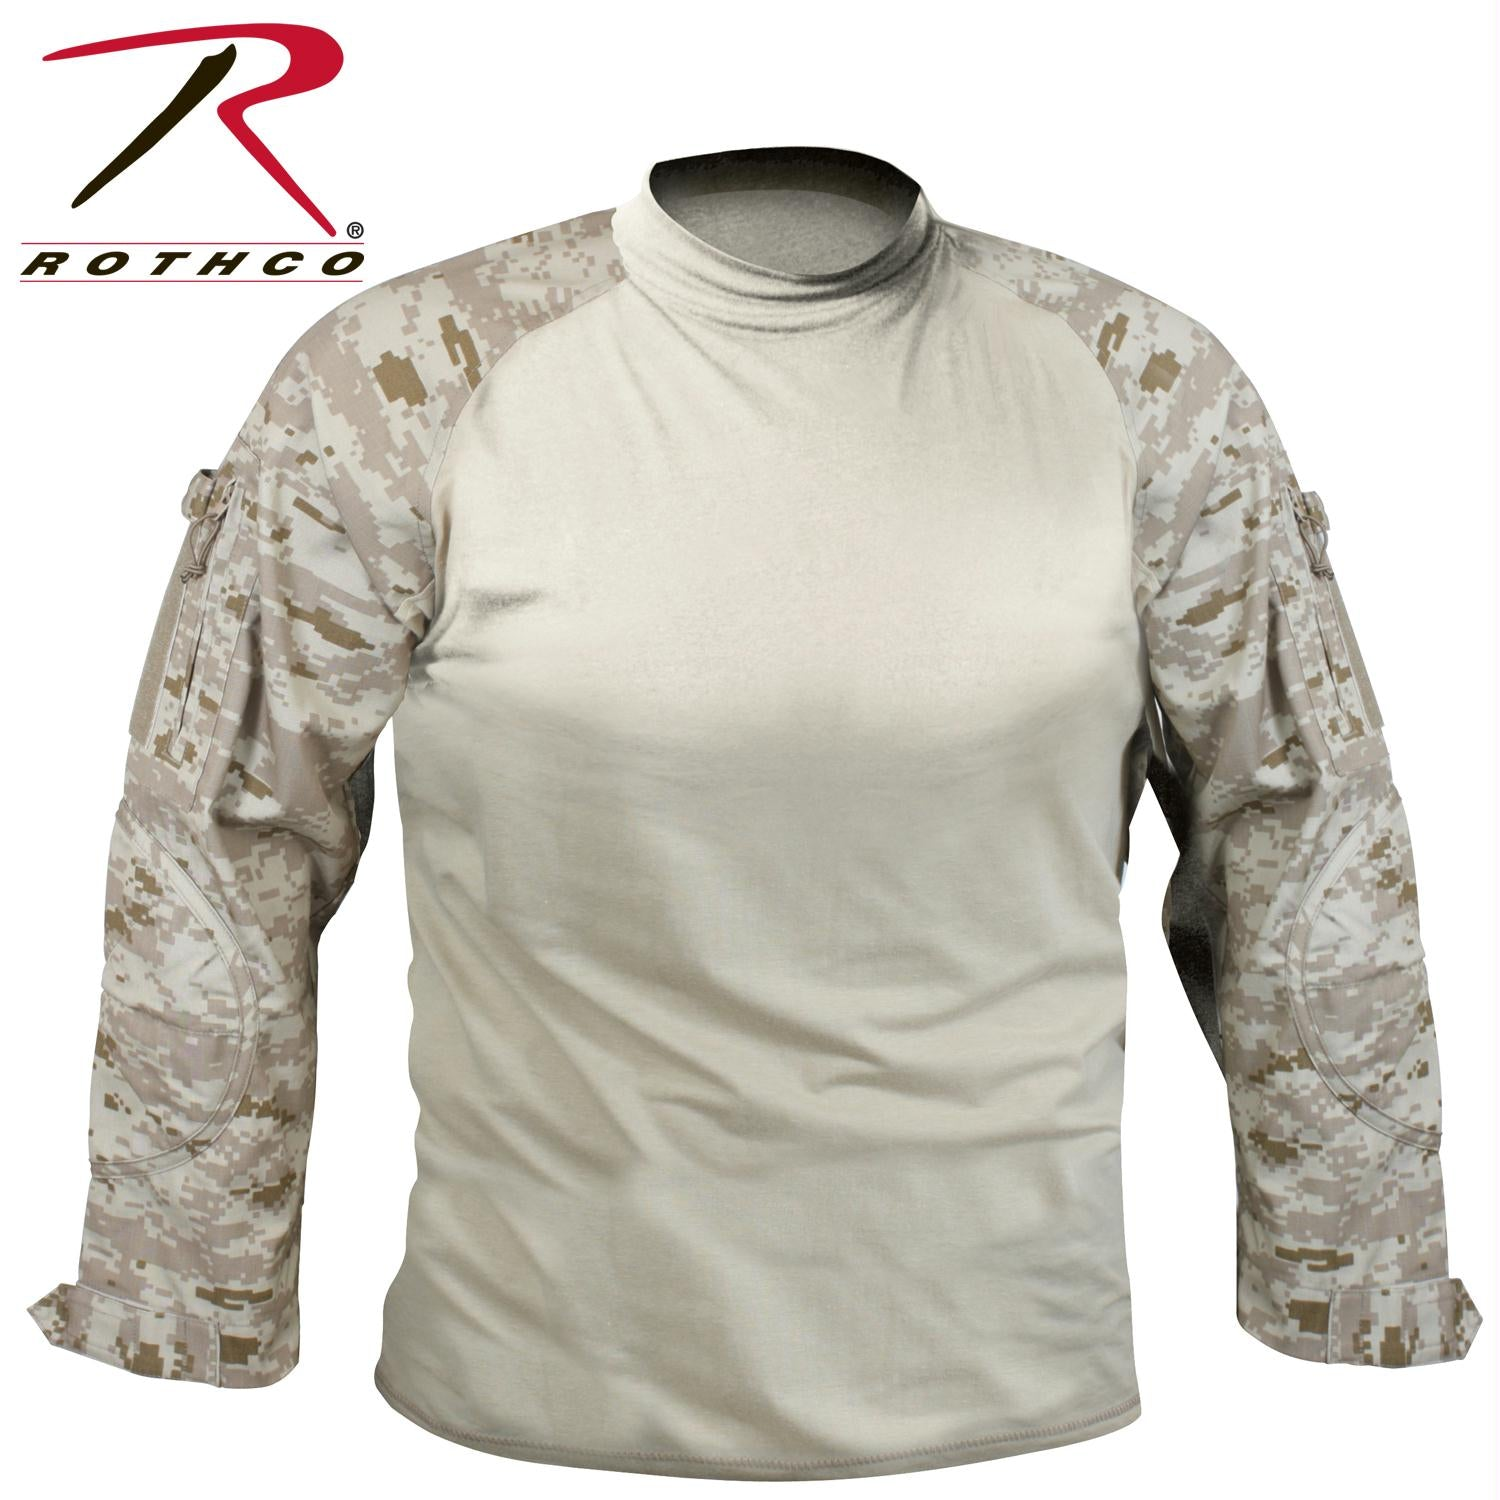 Rothco Military FR NYCO Combat Shirt - Desert Digital Camo / XL